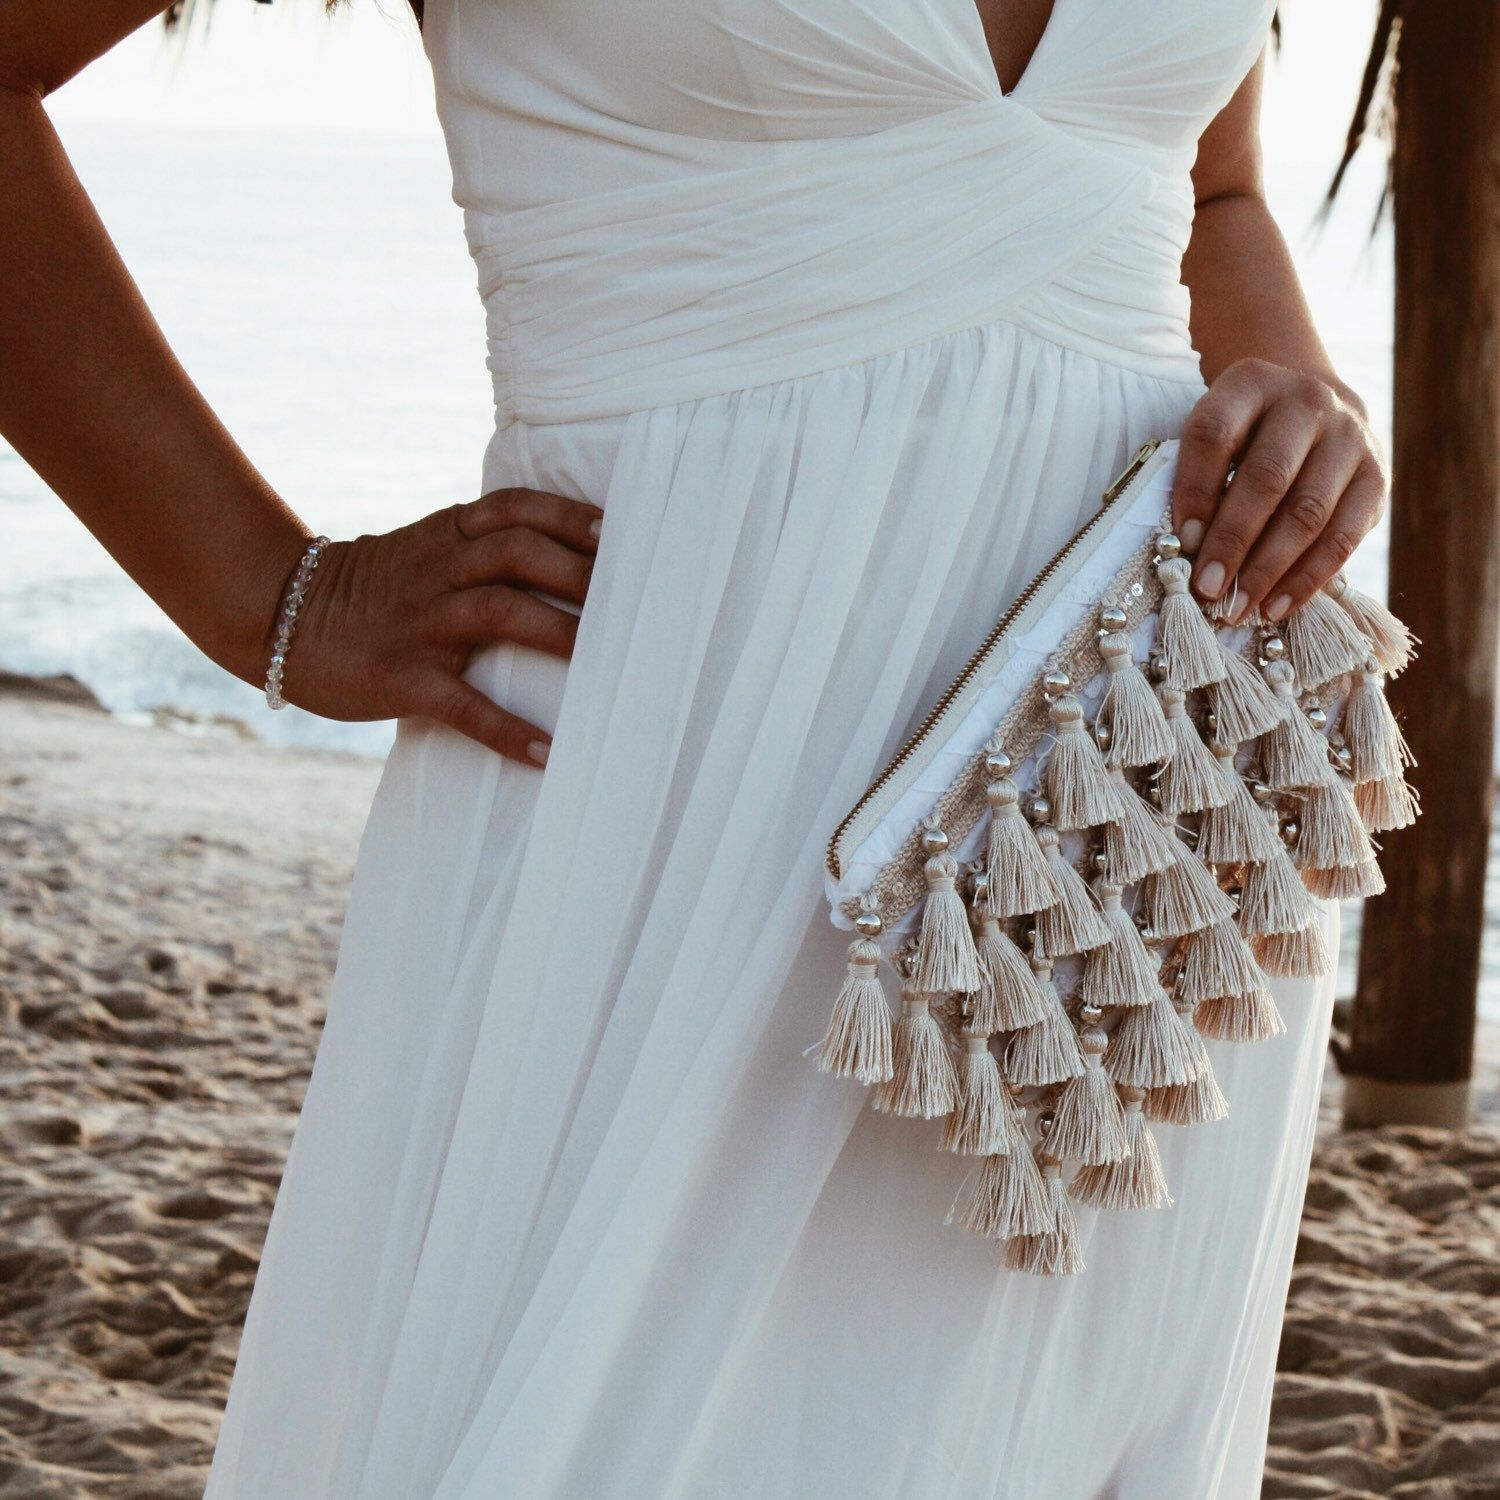 Bohemian wedding clutch | A Bohemian Heart - Boho Outfits, fashion ...